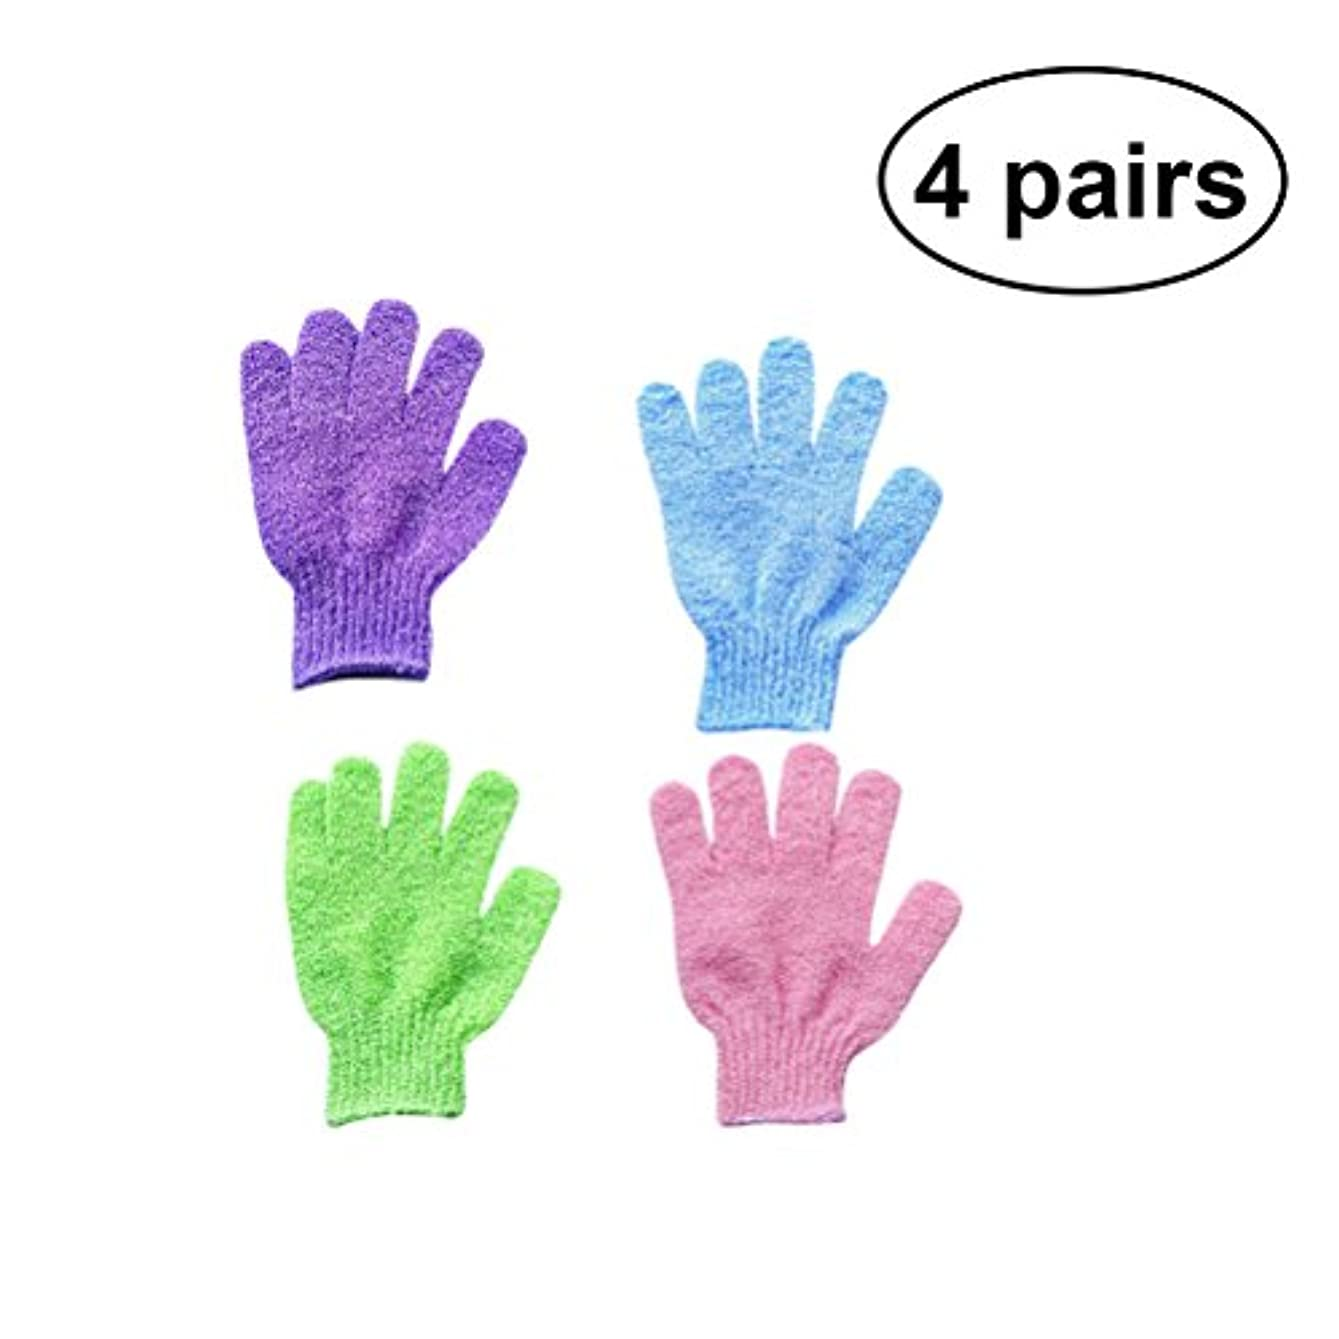 工場スプレーりんごHealifty 4 Pairs Exfoliating Bath Gloves Shower Mitts Exfoliating Body Spa Massage Dead Skin Cell Remover